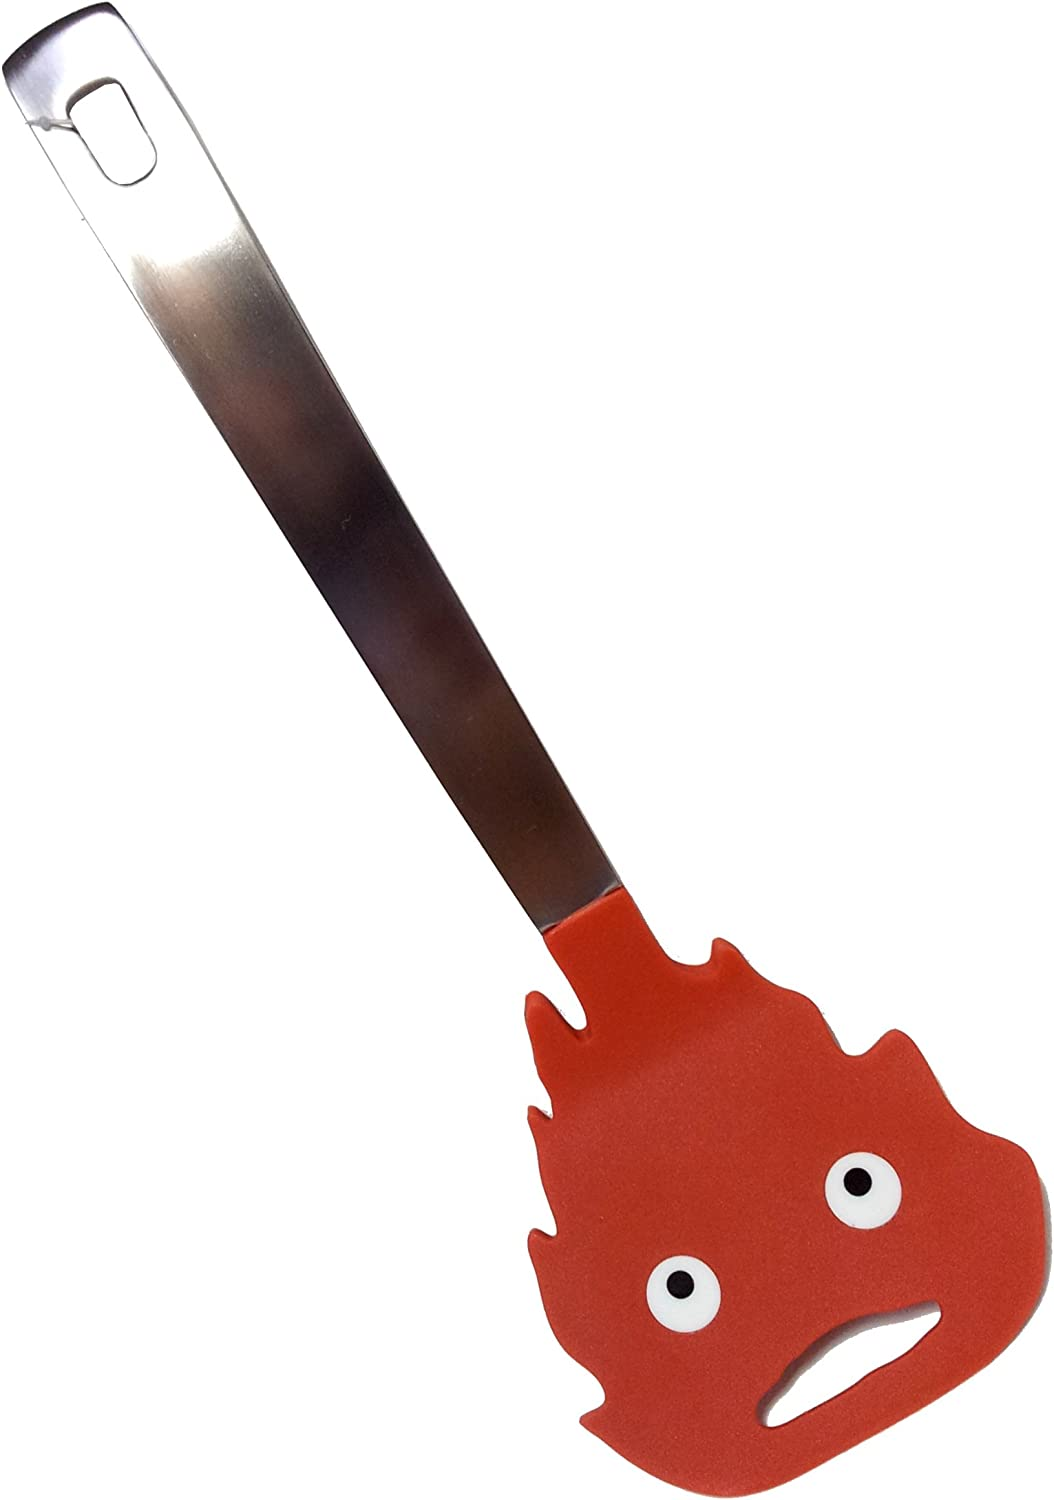 Ghibli Howl's Moving Castle Calcifer Kitchen Tool Turner